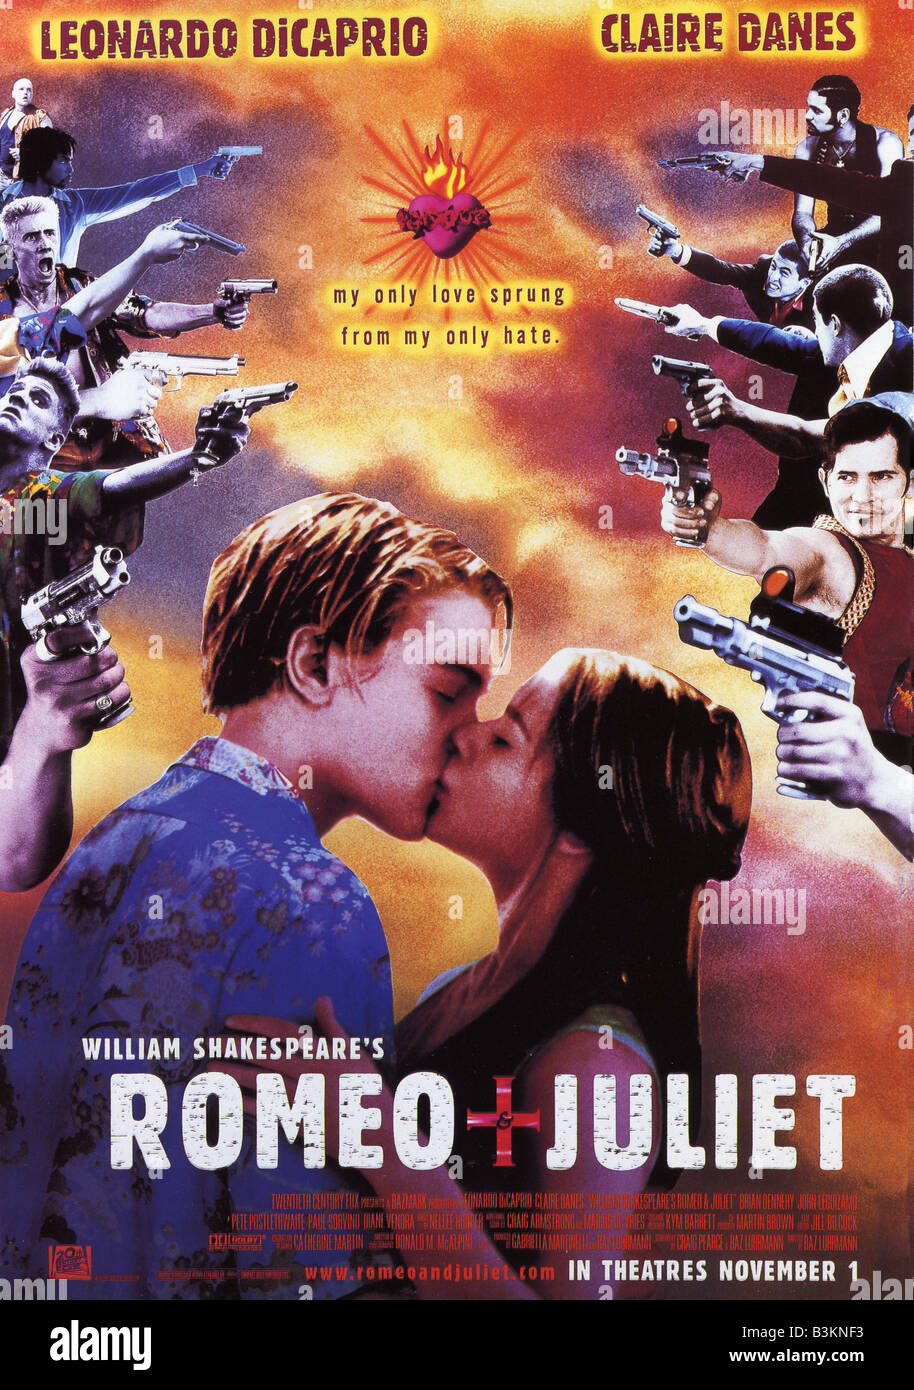 WILLIAM SHAKESPEARE'S ROMEO AND JULIET  Poster for 1996 TCF/Bazmark film with Leonardo DiCaprio and Claire Danes - Stock Image